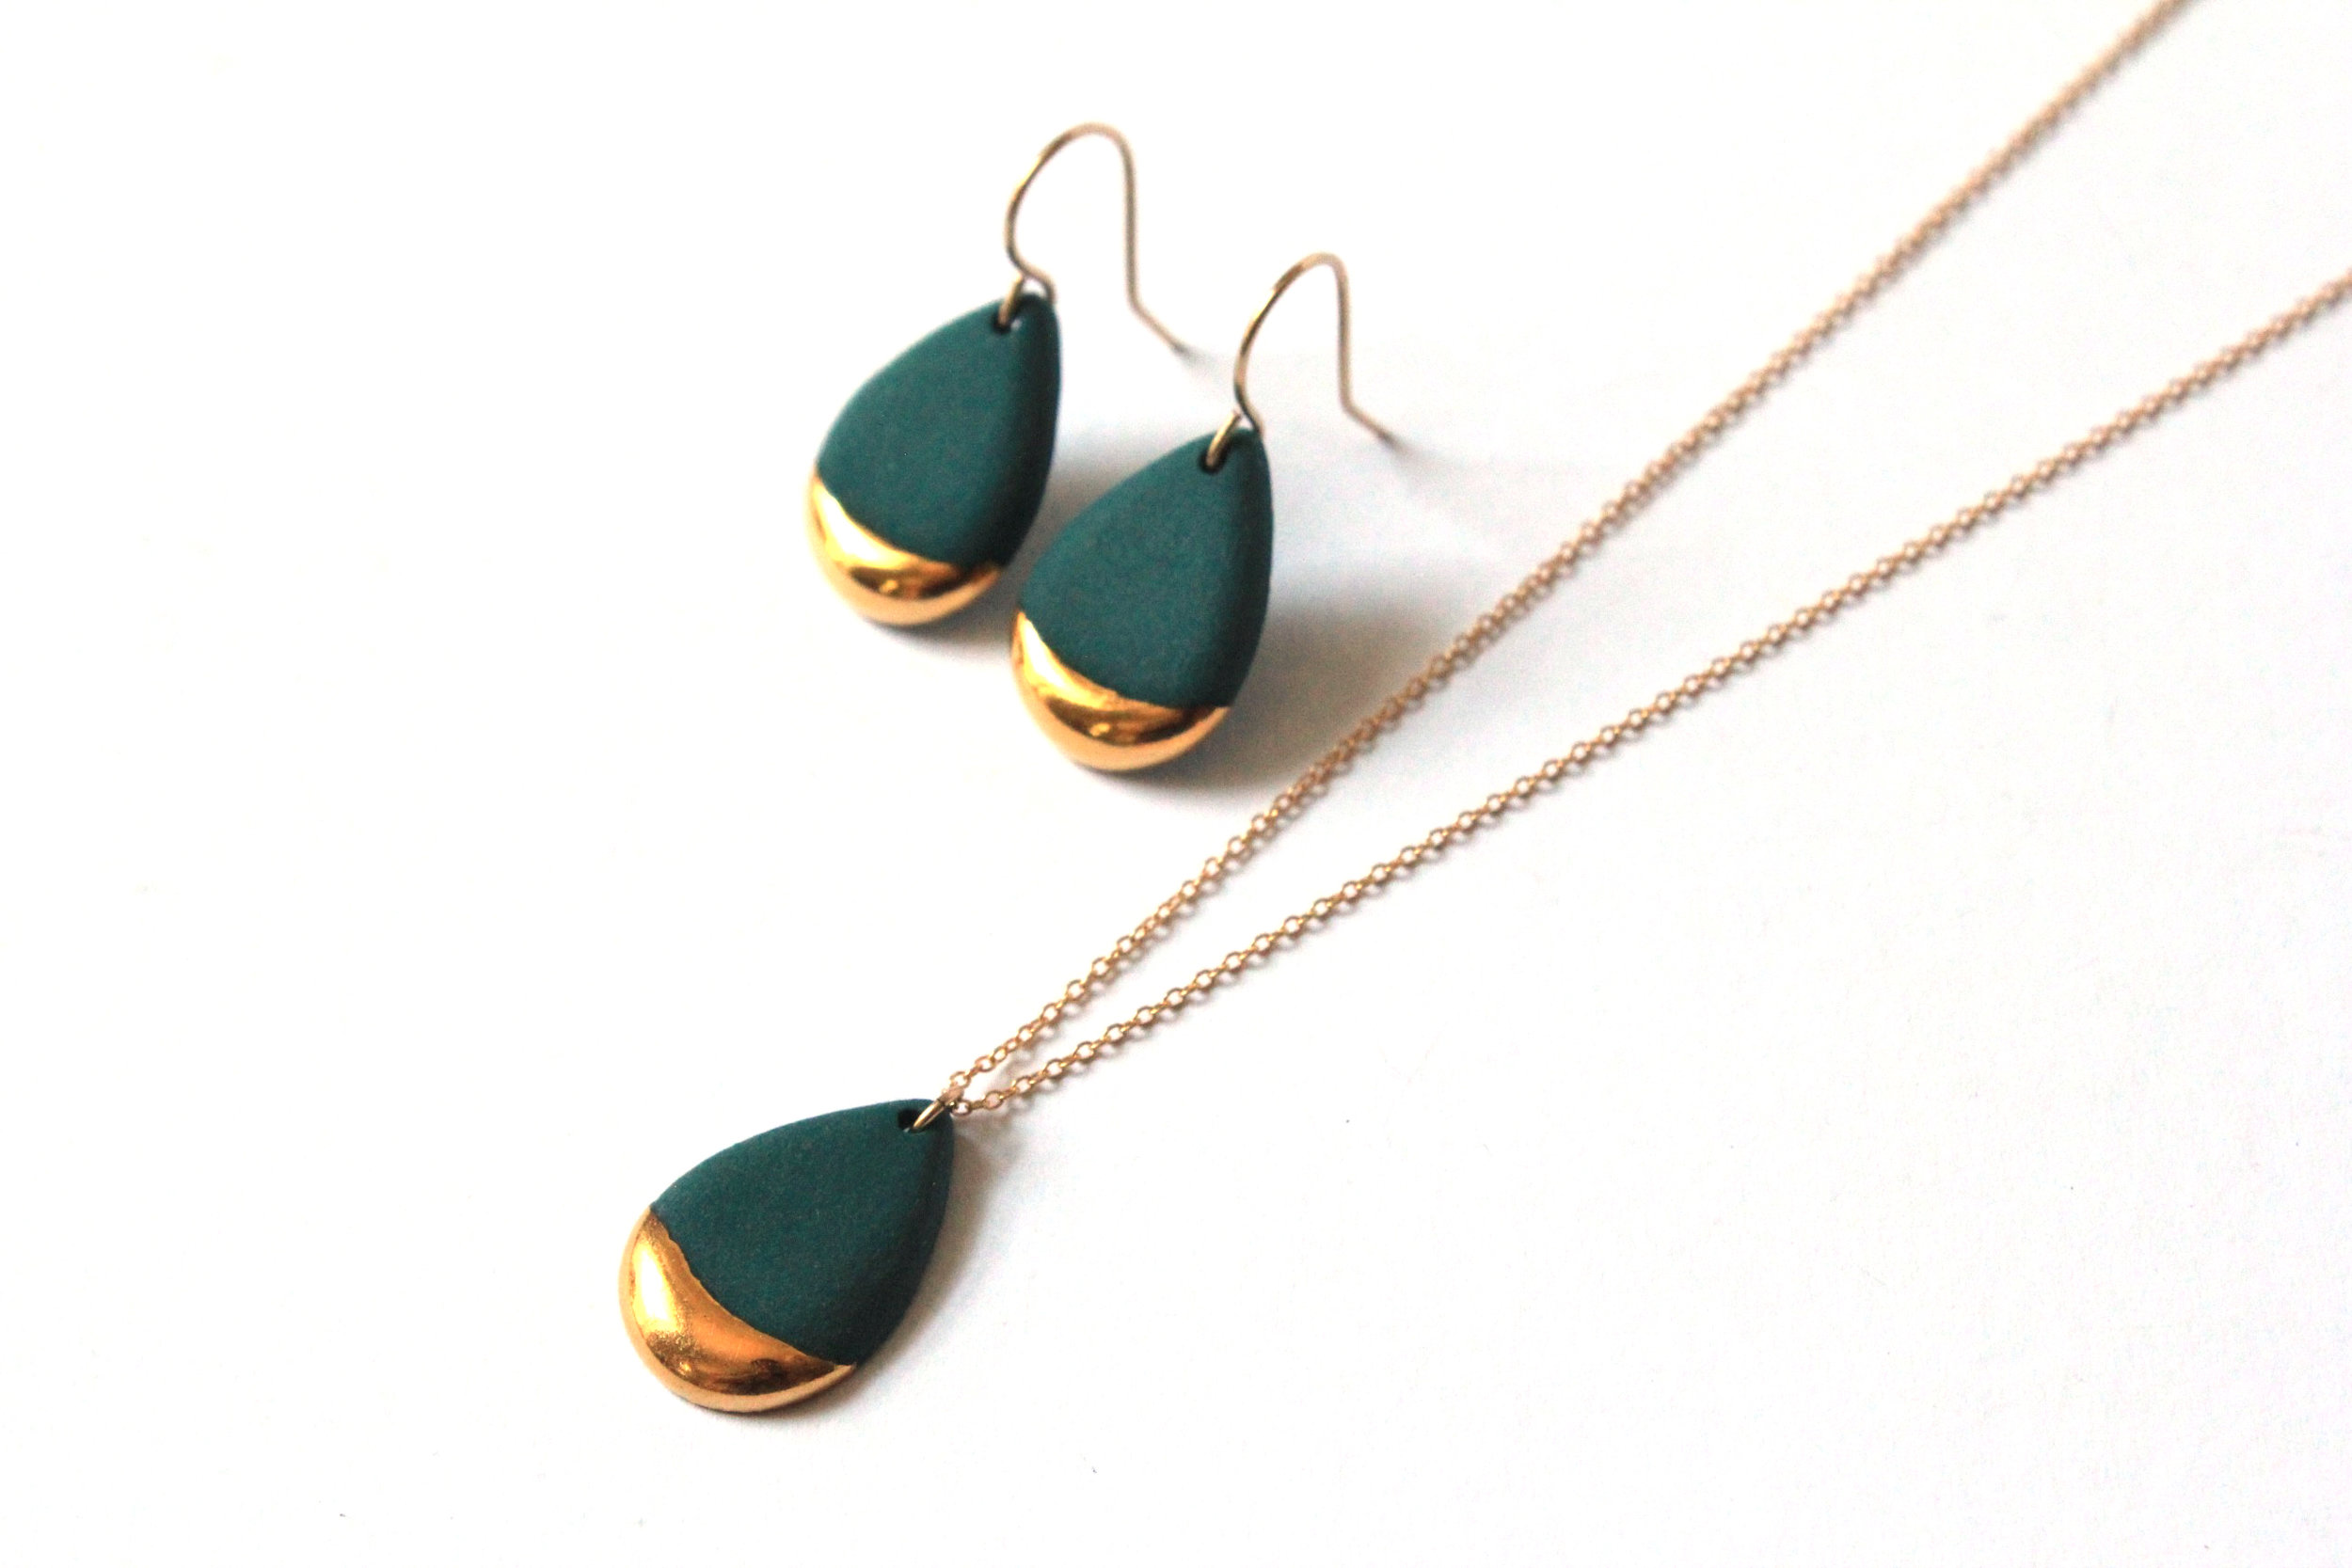 Gold Dipped Teardrop Collection in Teal